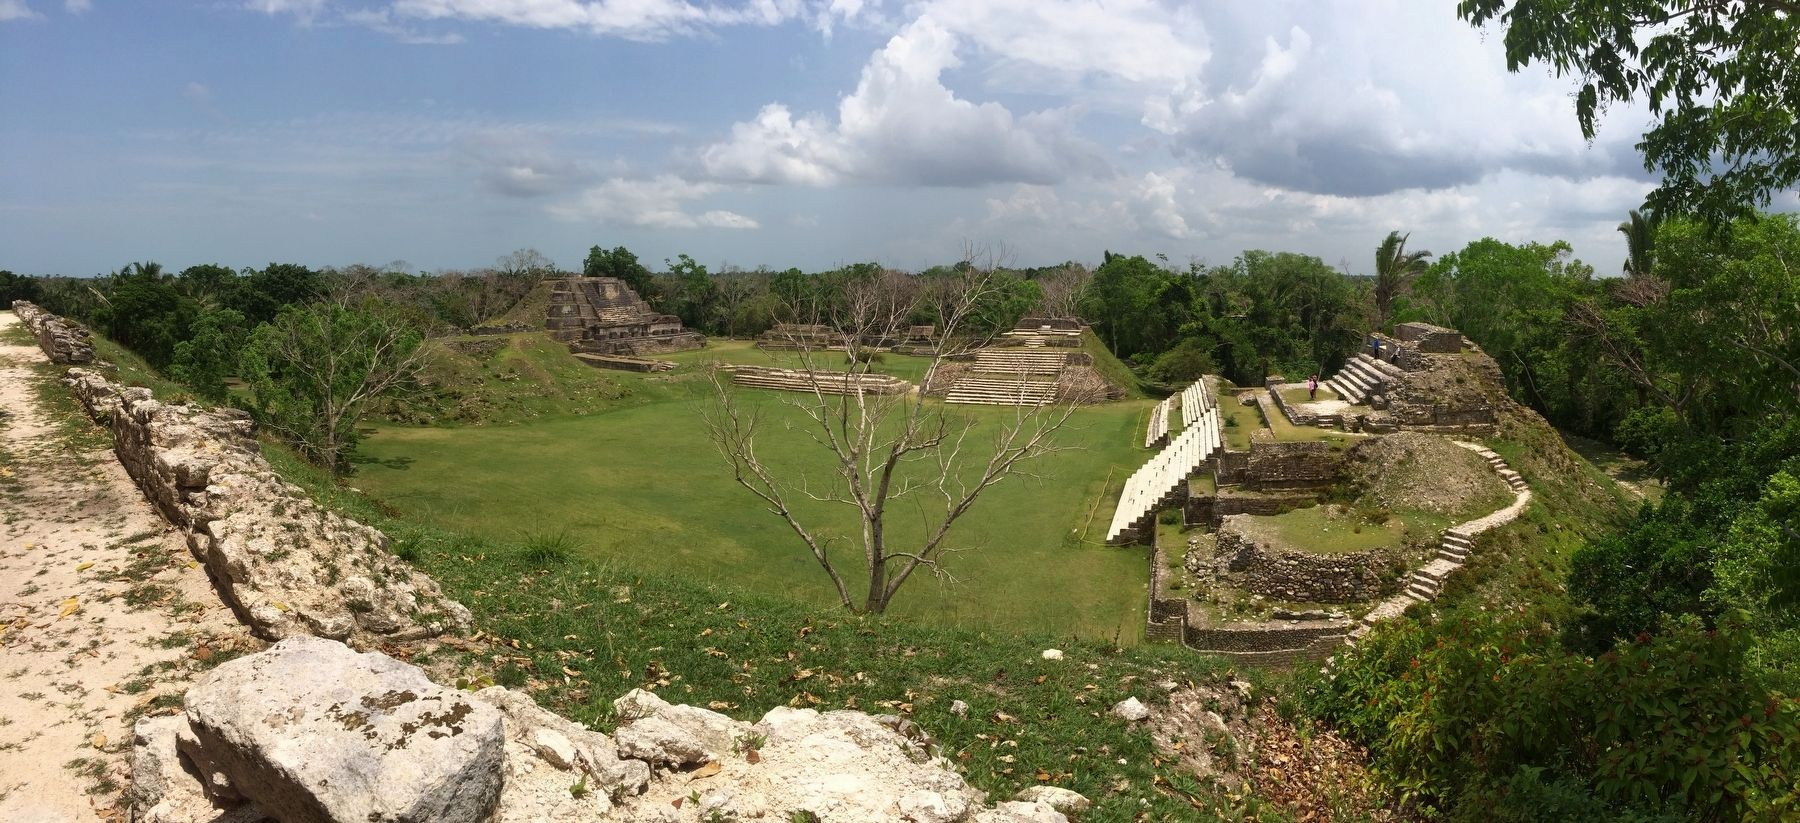 An overview of the Altun Ha site, seen towards the south. image. Click for full size.